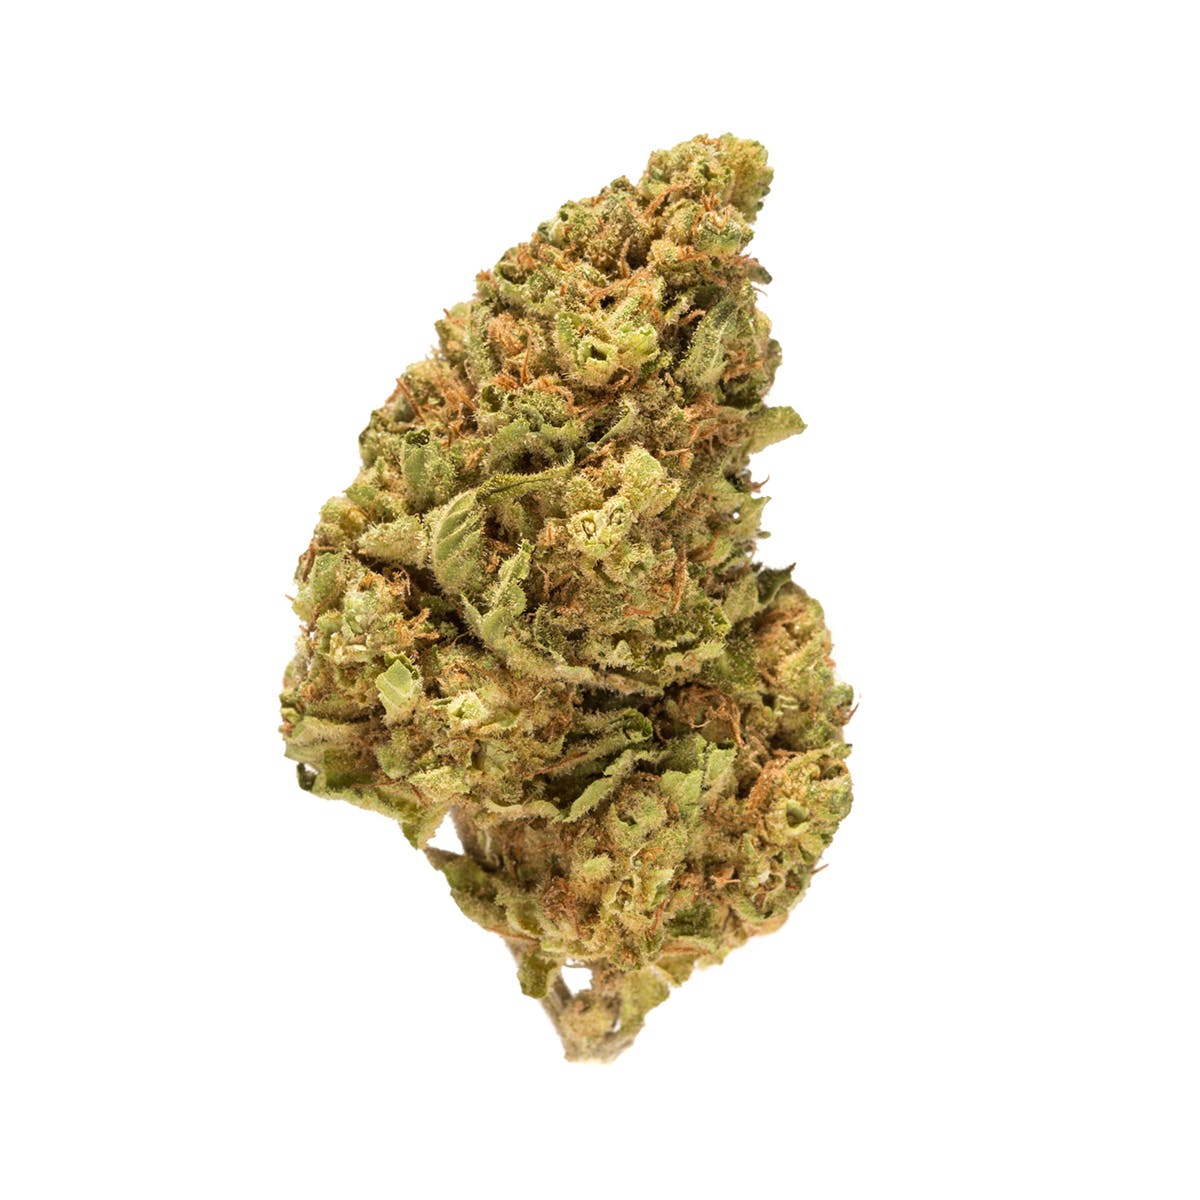 marijuana-dispensaries-red-run-cannabis-company-in-kenai-pineapple-express